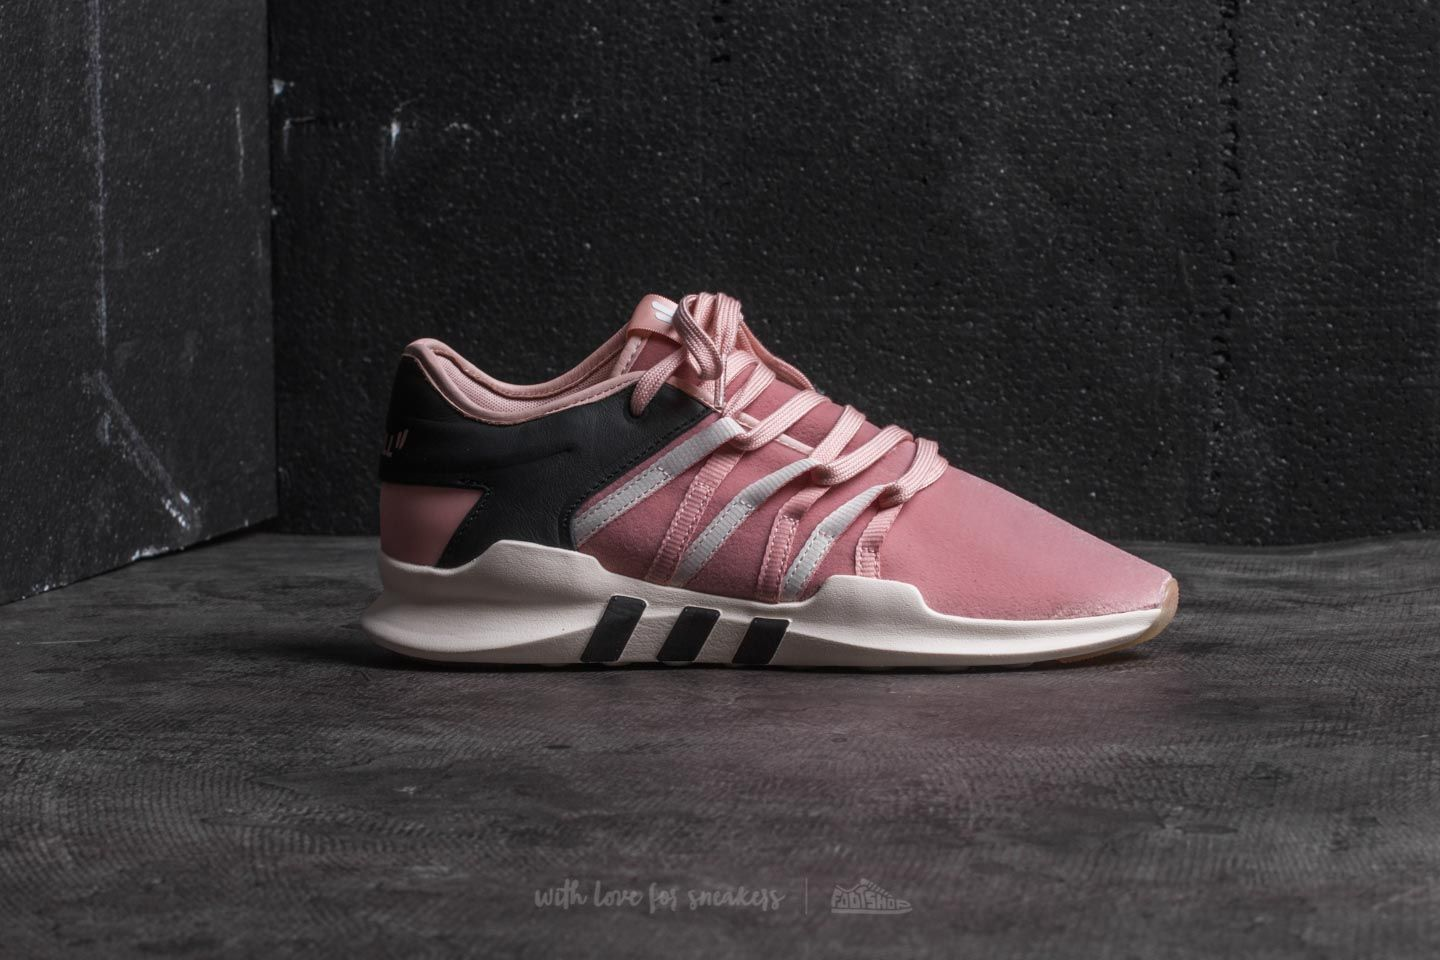 brand new 9aee5 6cdab adidas Consortium x Overkill x Fruition Sneaker Exchange EQT Lacing ADV  Vapour Pink Icey Pink